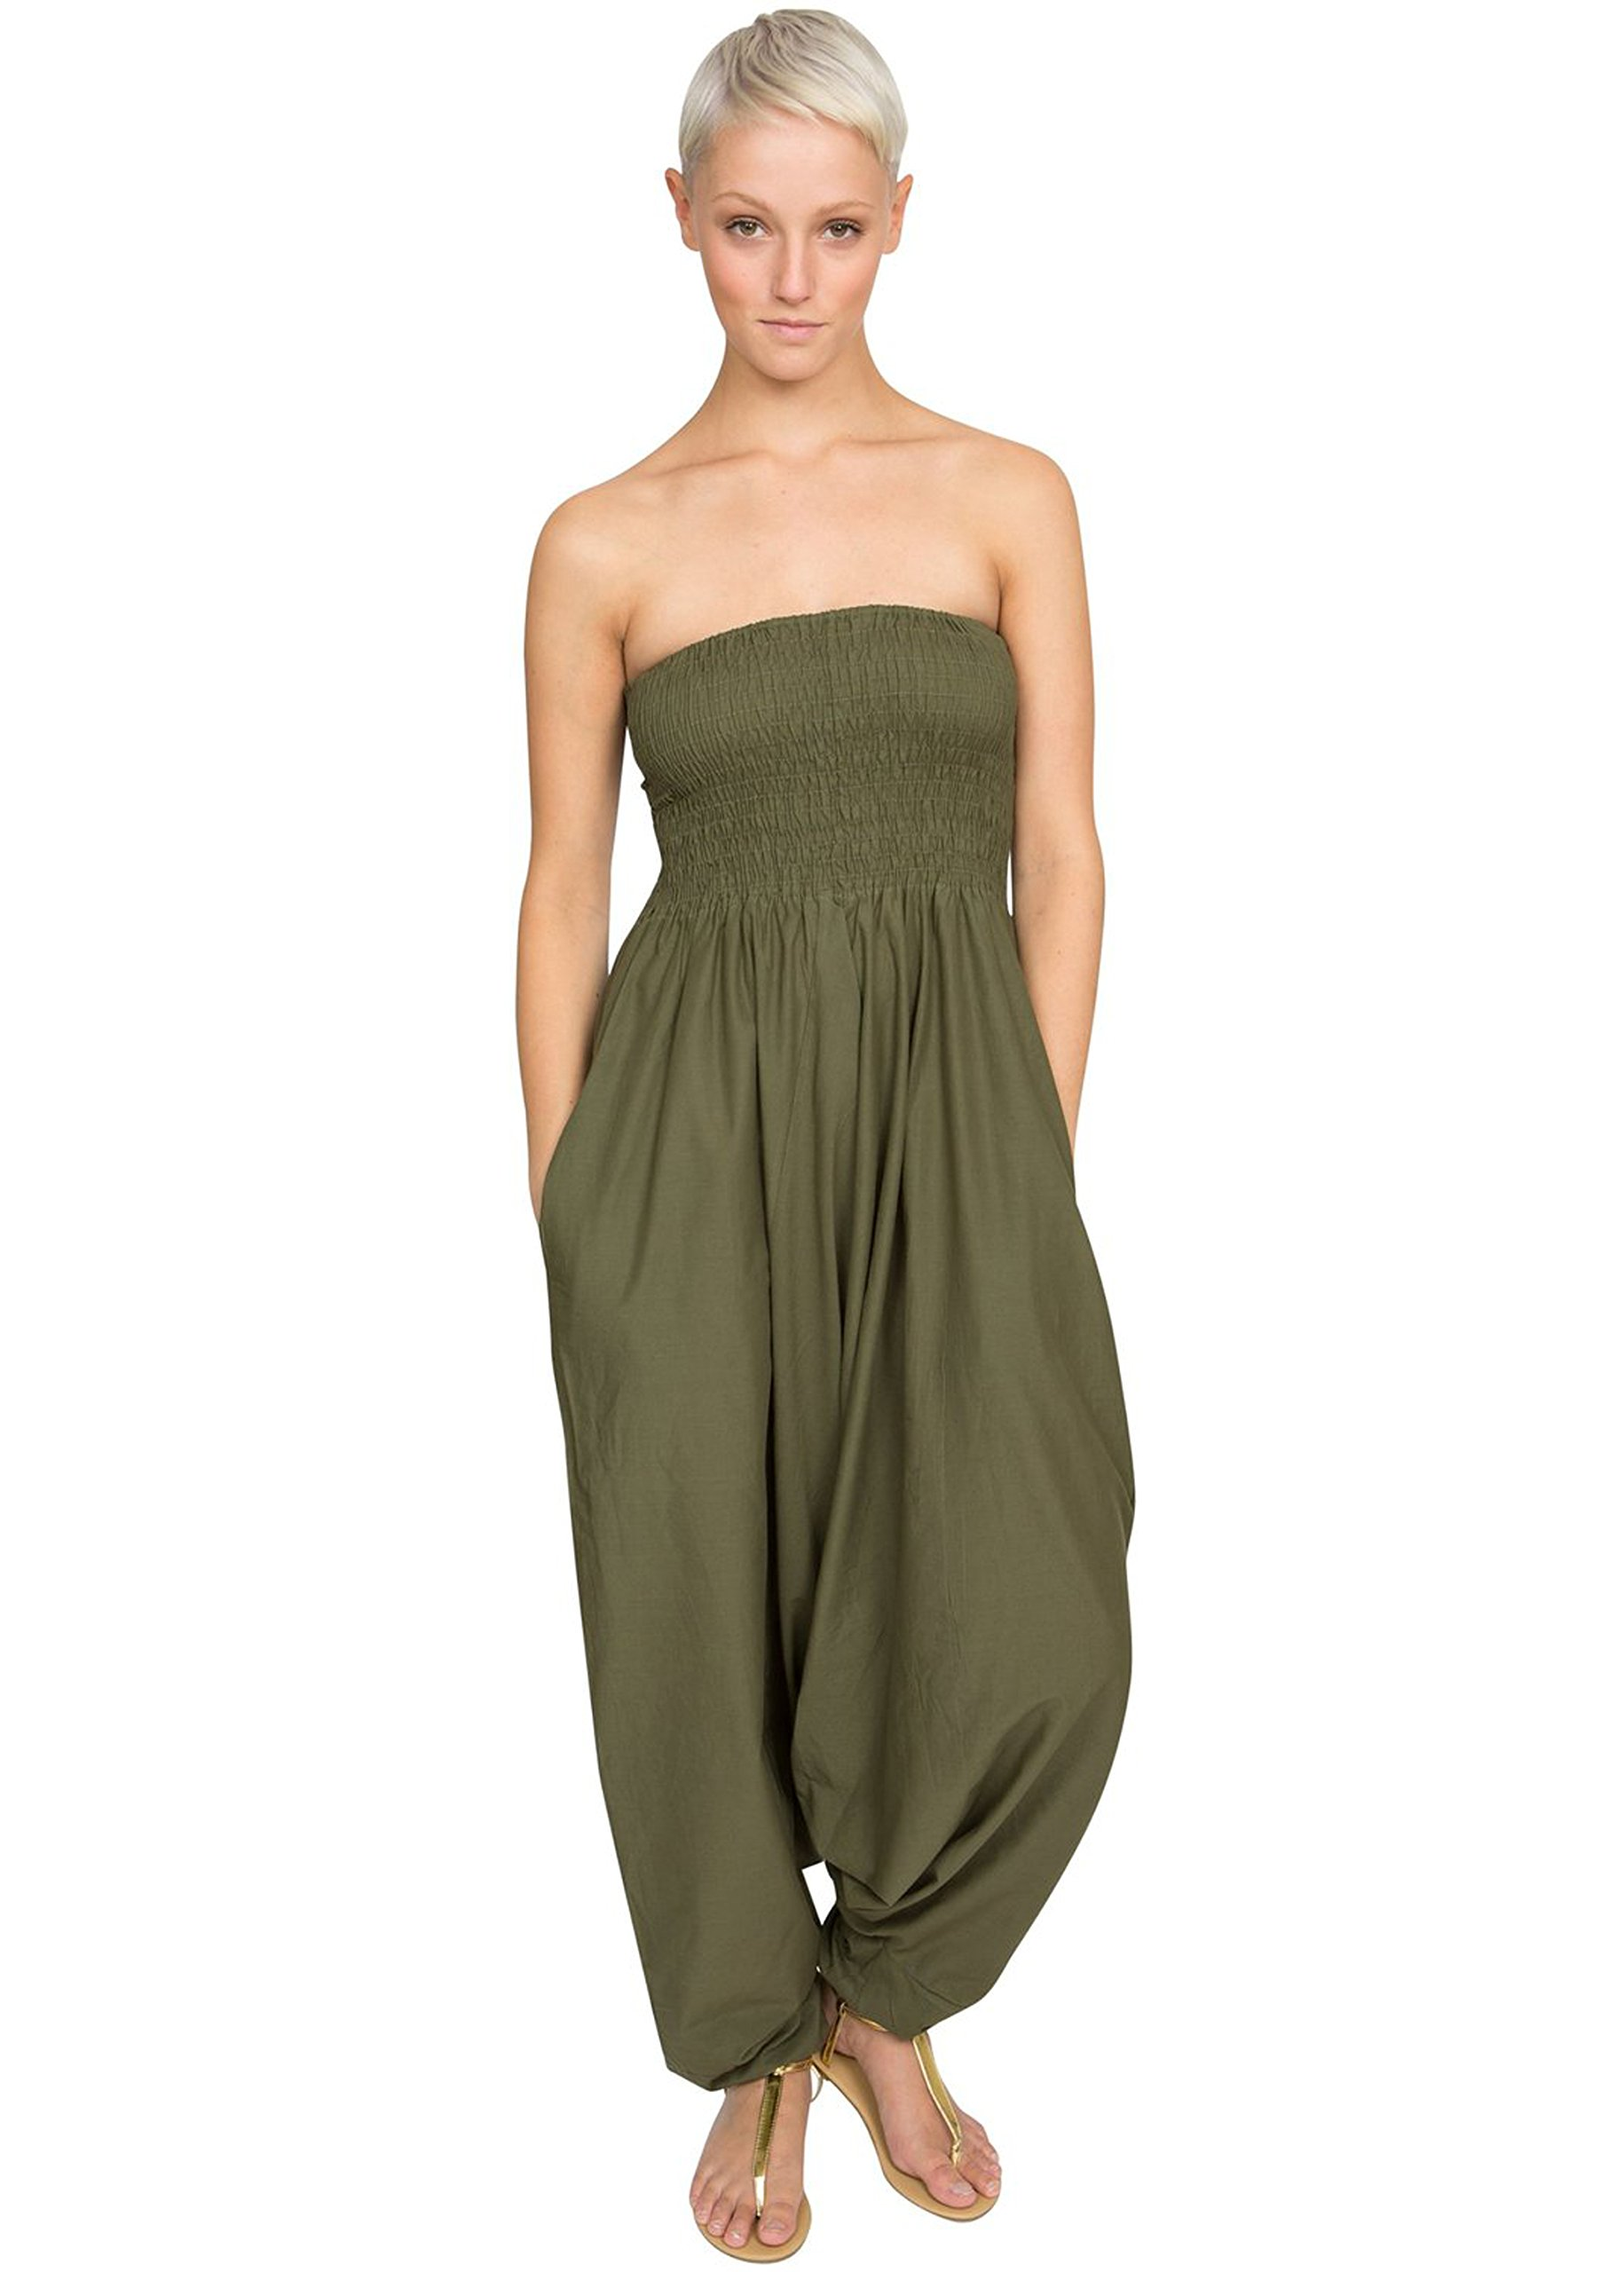 c5c19da87dd likemary Harem Jumpsuit and Hareem Pants Convertible 2 in 1 Cotton Bandeau  Romper product image